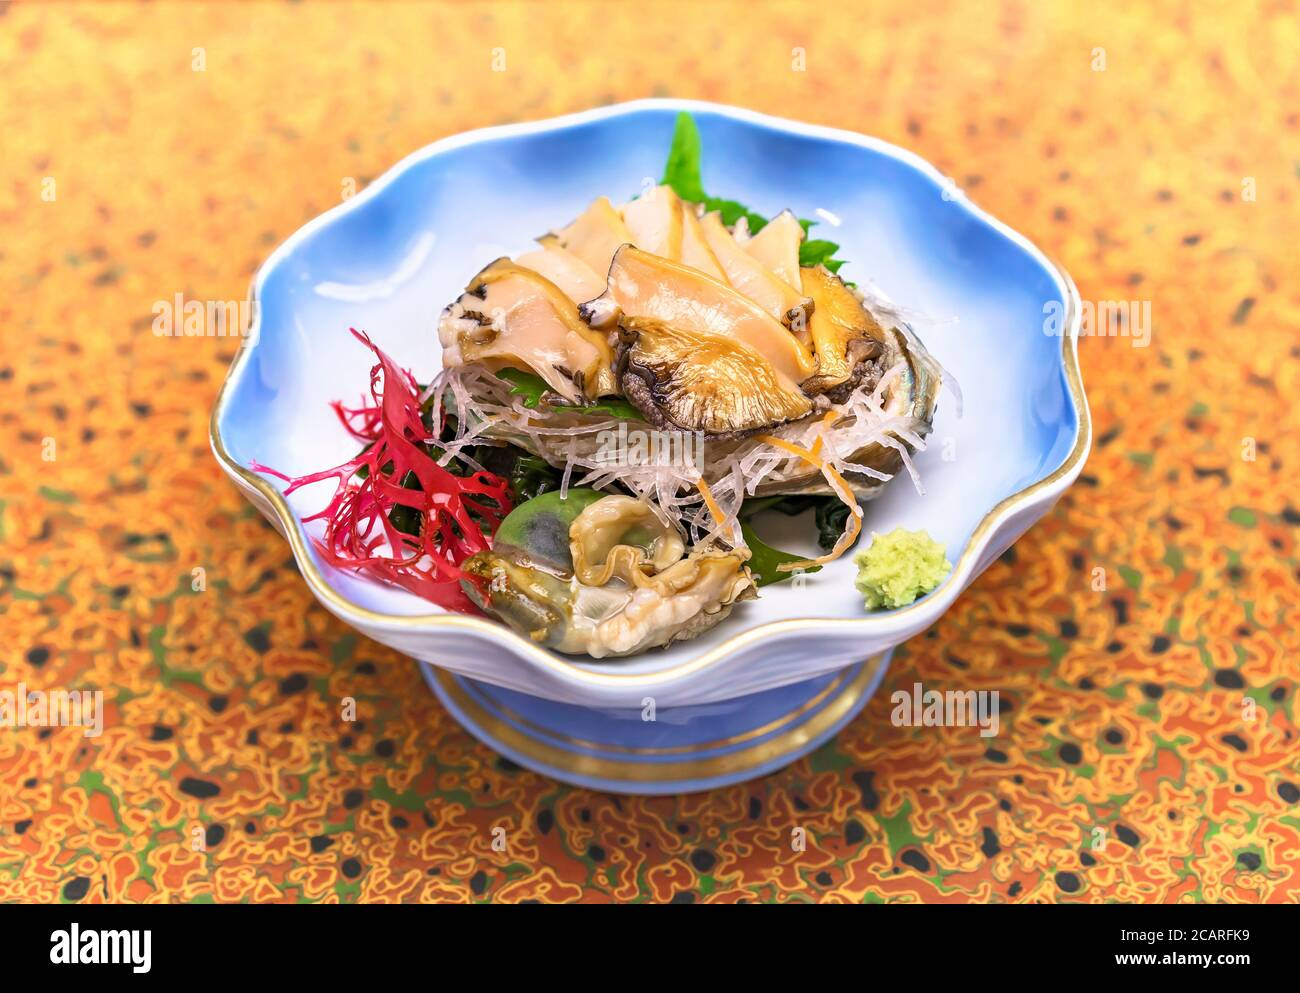 Raw sashimi high-class japanese cuisine of fresh Awabi abalone in a dish plate with Gracilaria red algae, shiso leaves and julienne of daikon radish a Stock Photo